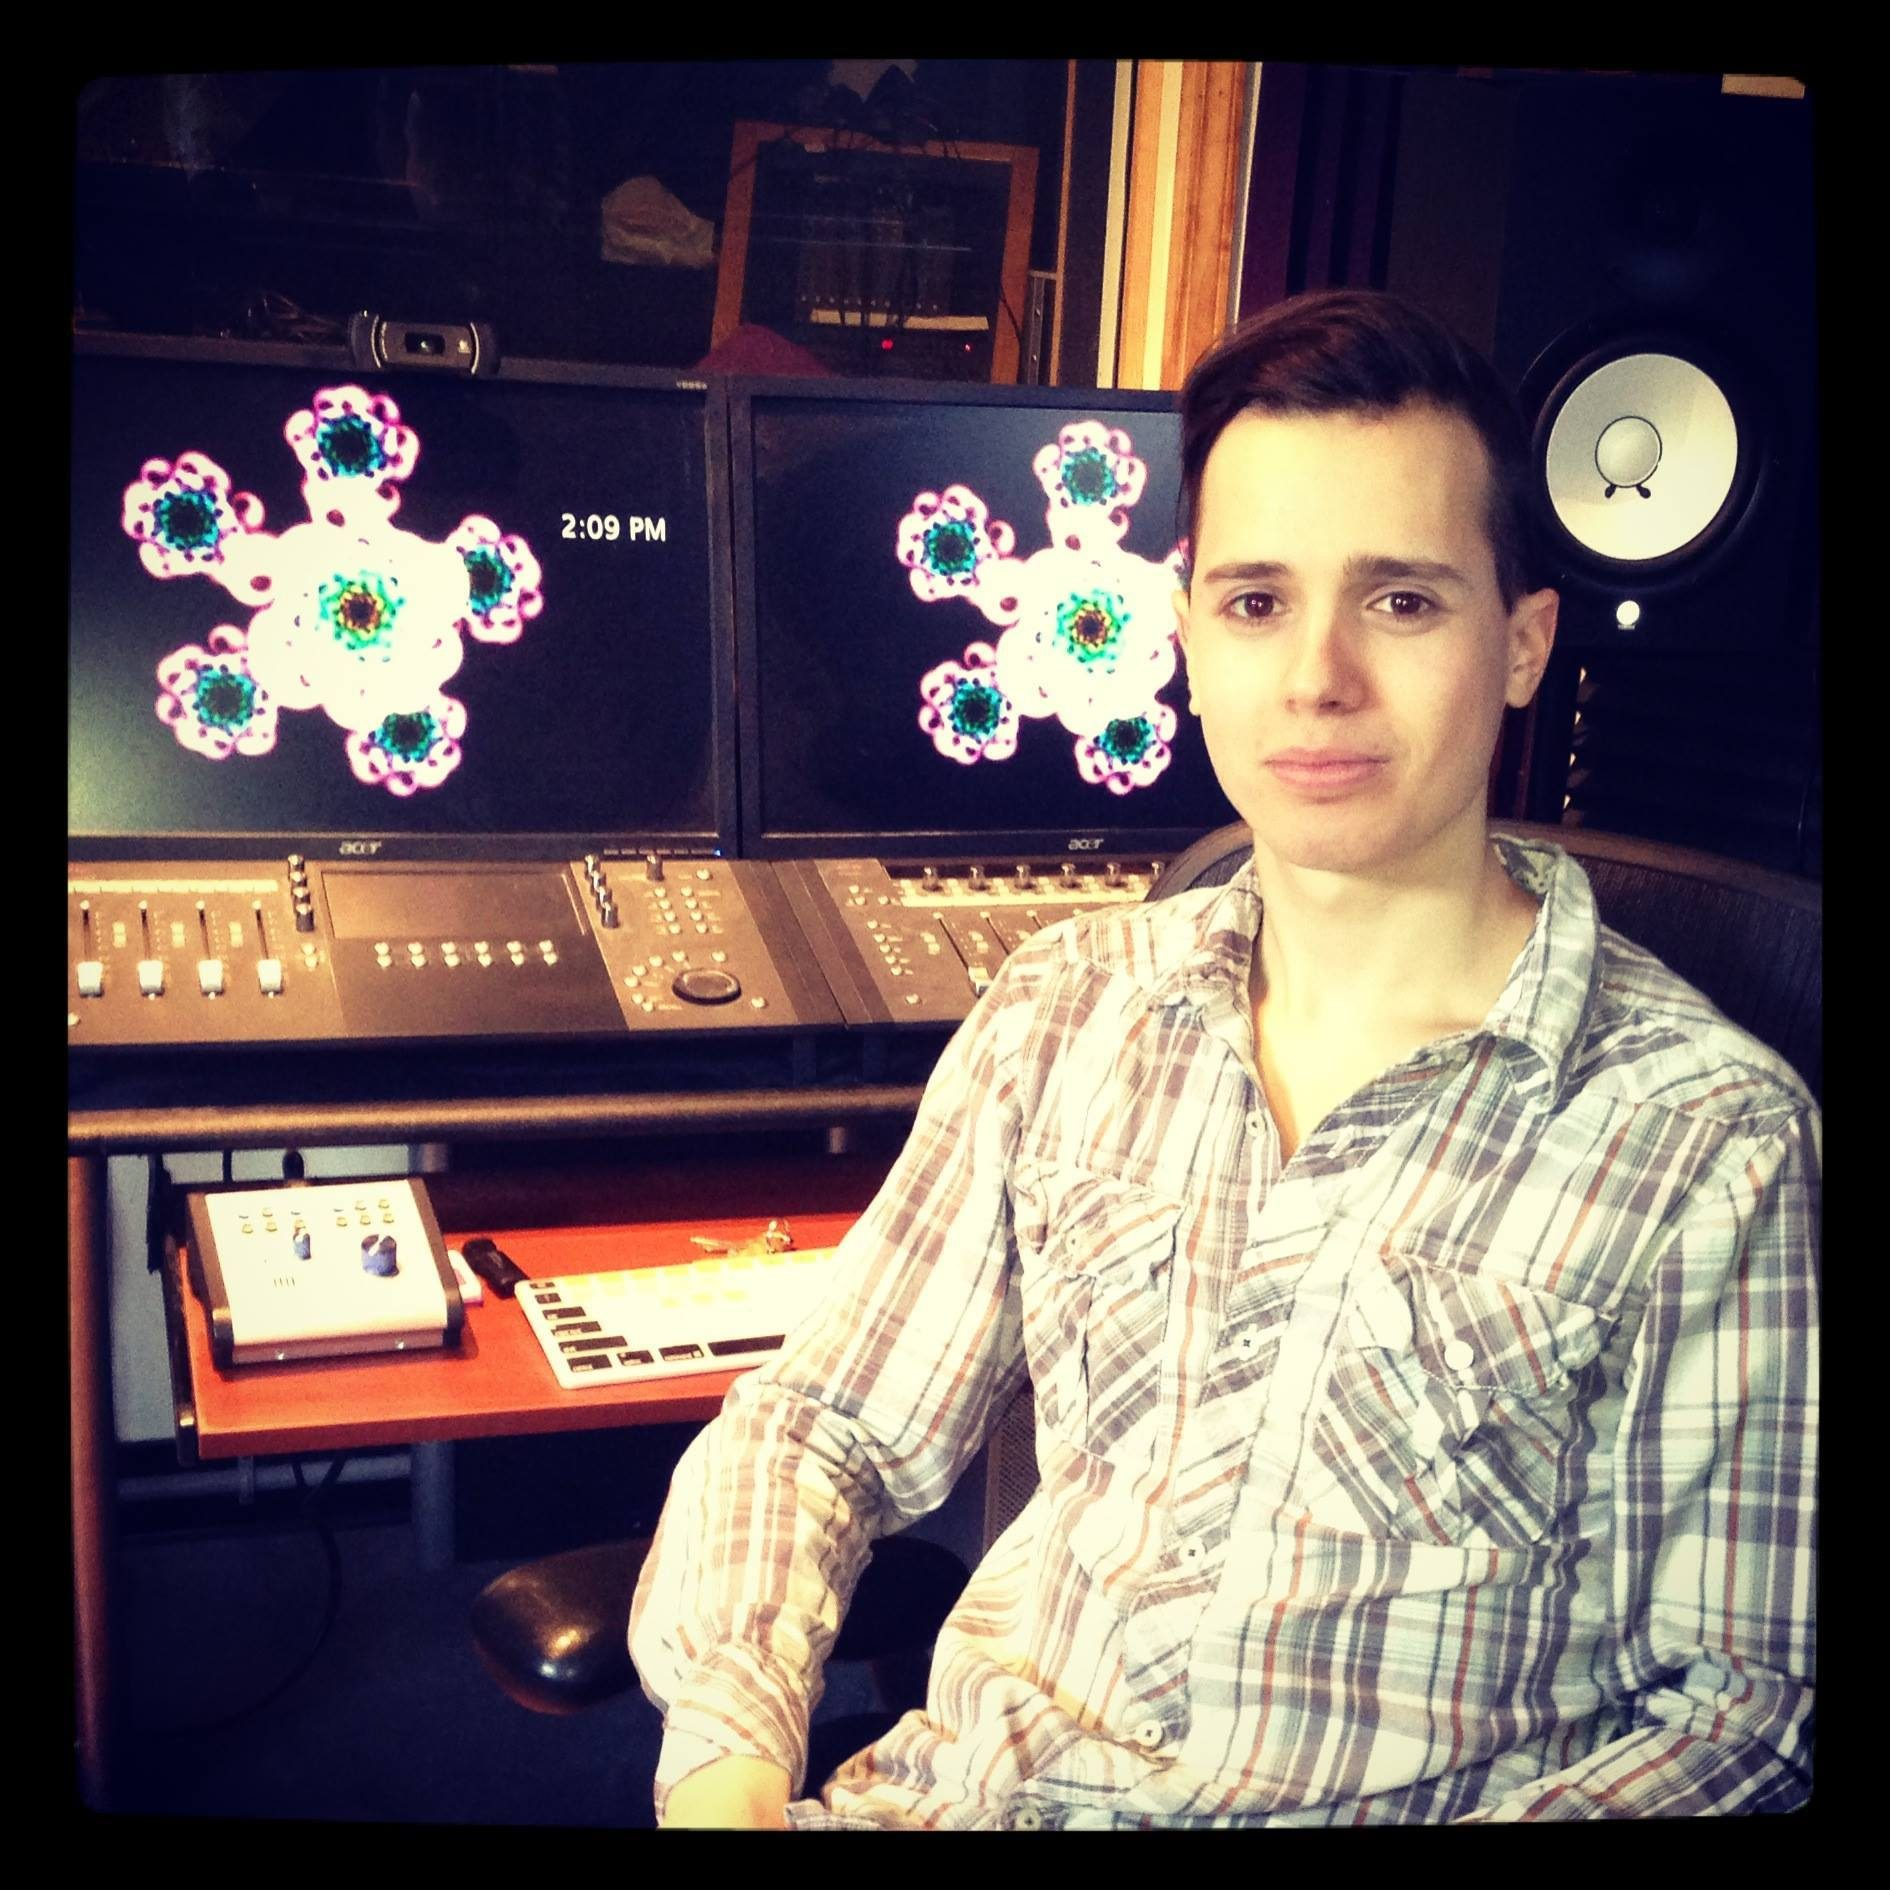 Engineer Producer Jake Antelis